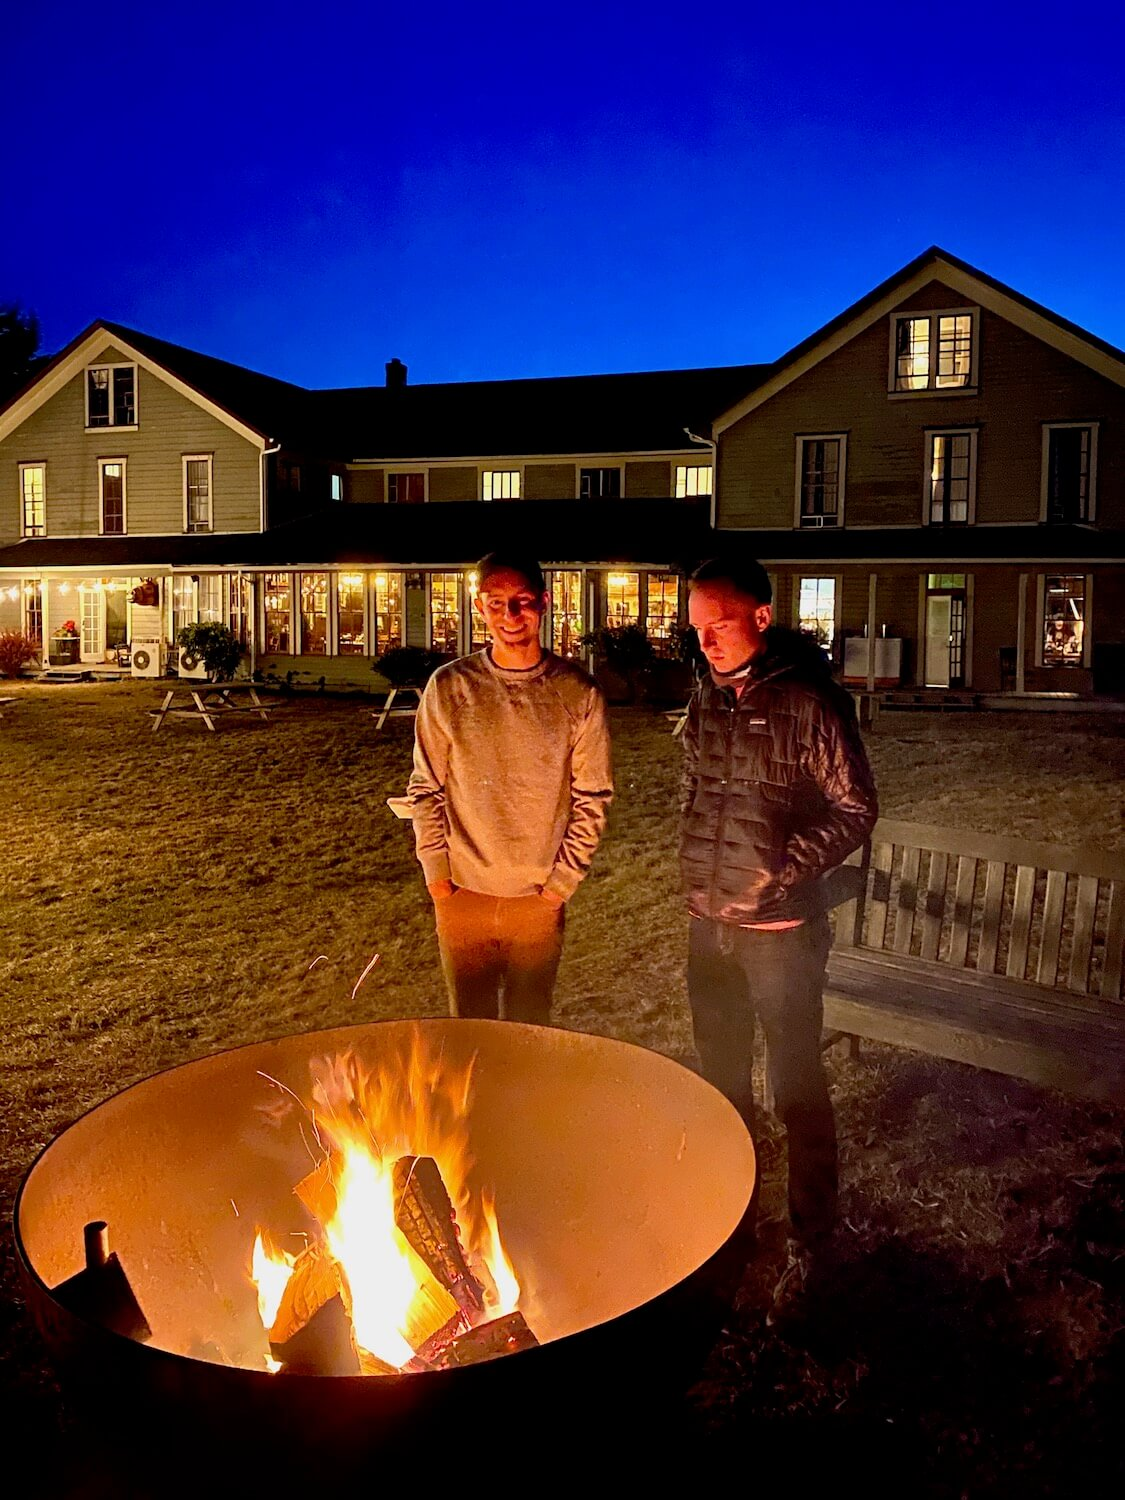 Two men stand beside a fire pit in front of a historic looking wood framed hotel. The fire is bright and crackling yellow and reflects on the faces of the two men. In the background, the hotel commands the skyline, ablaze with lights shining from within all under a blue dusk sky.